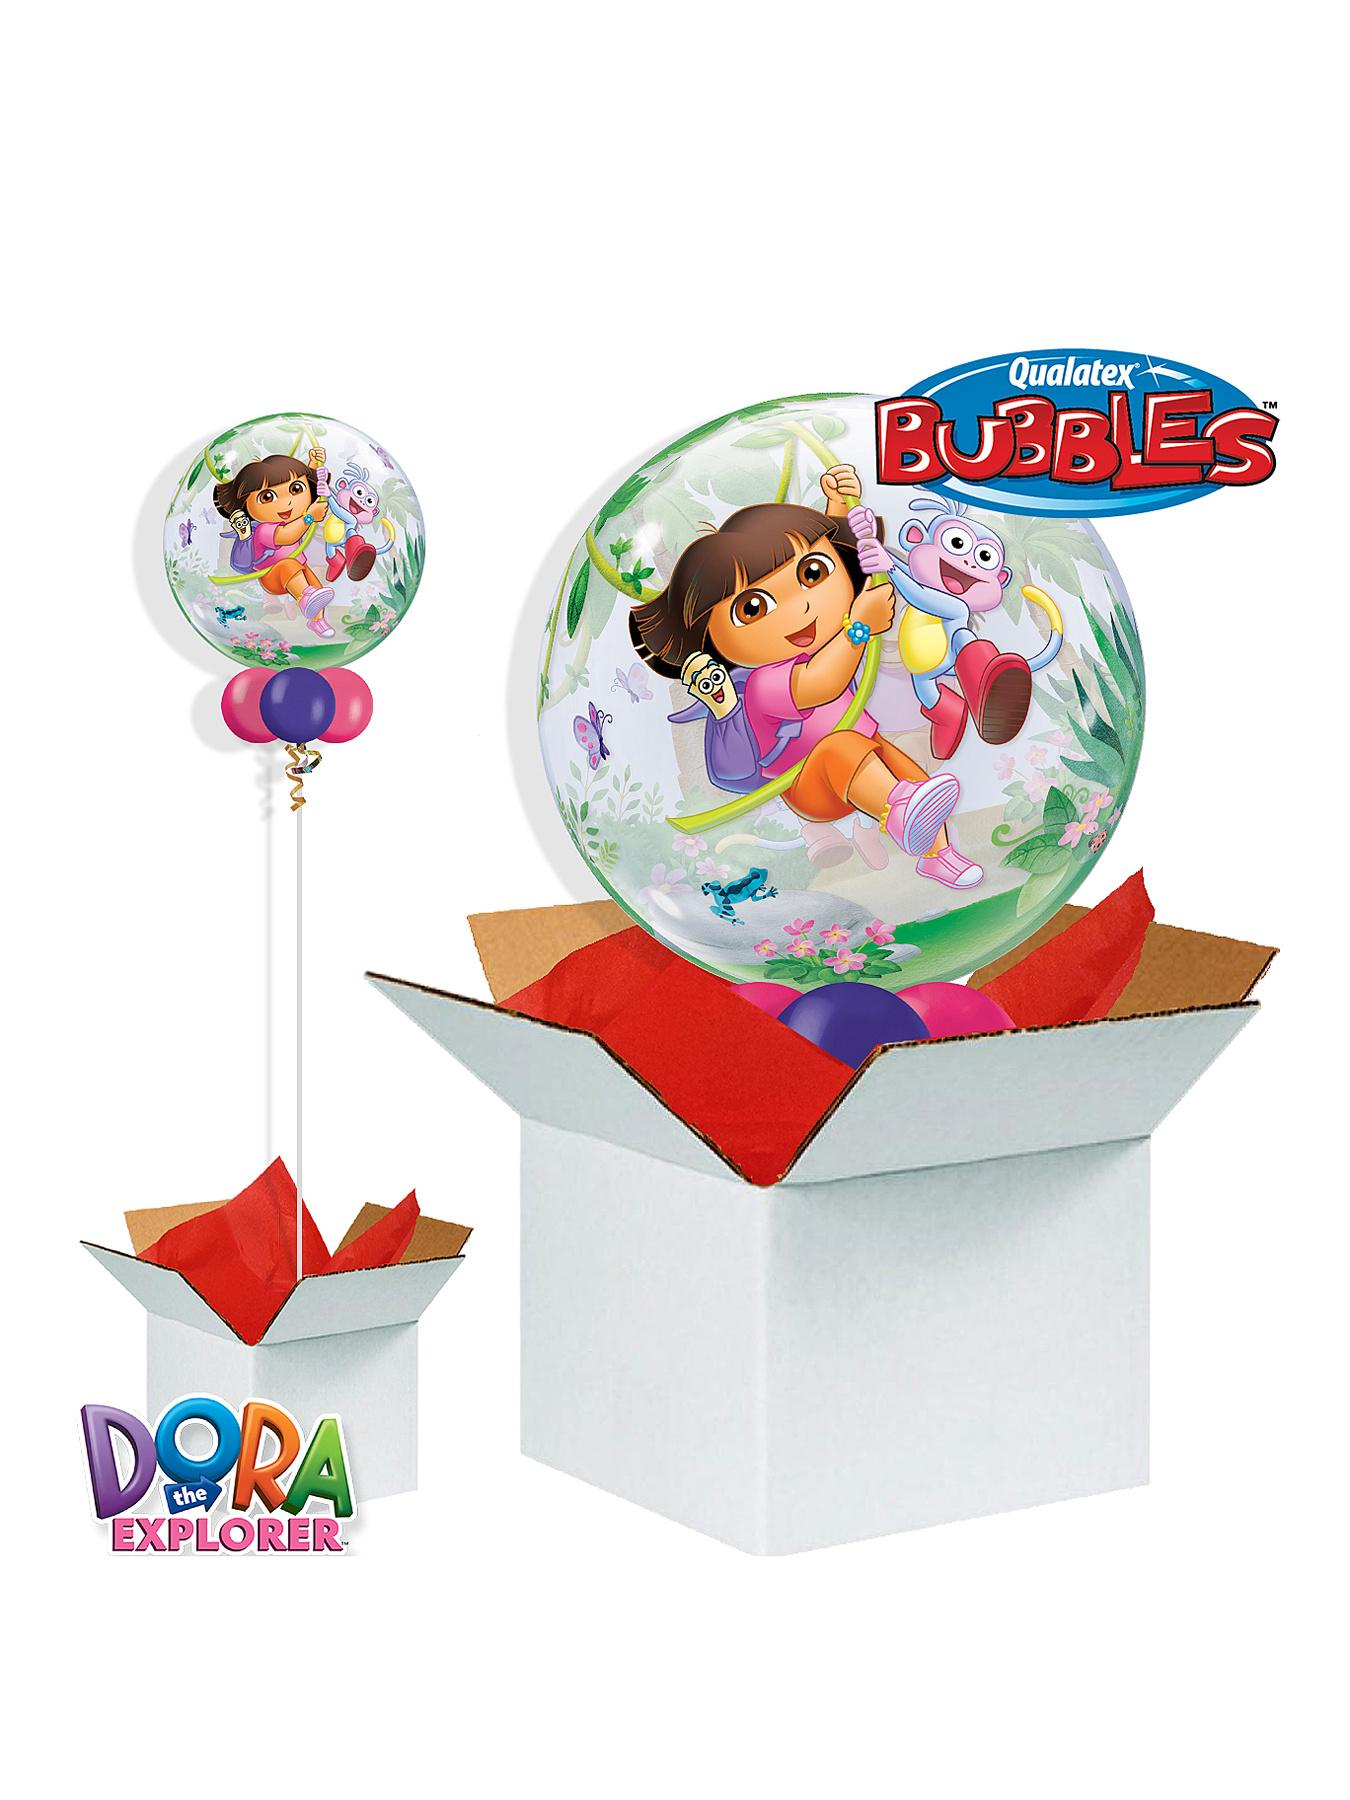 Dora the Explorer and Boots 22 inch Bubble Balloon